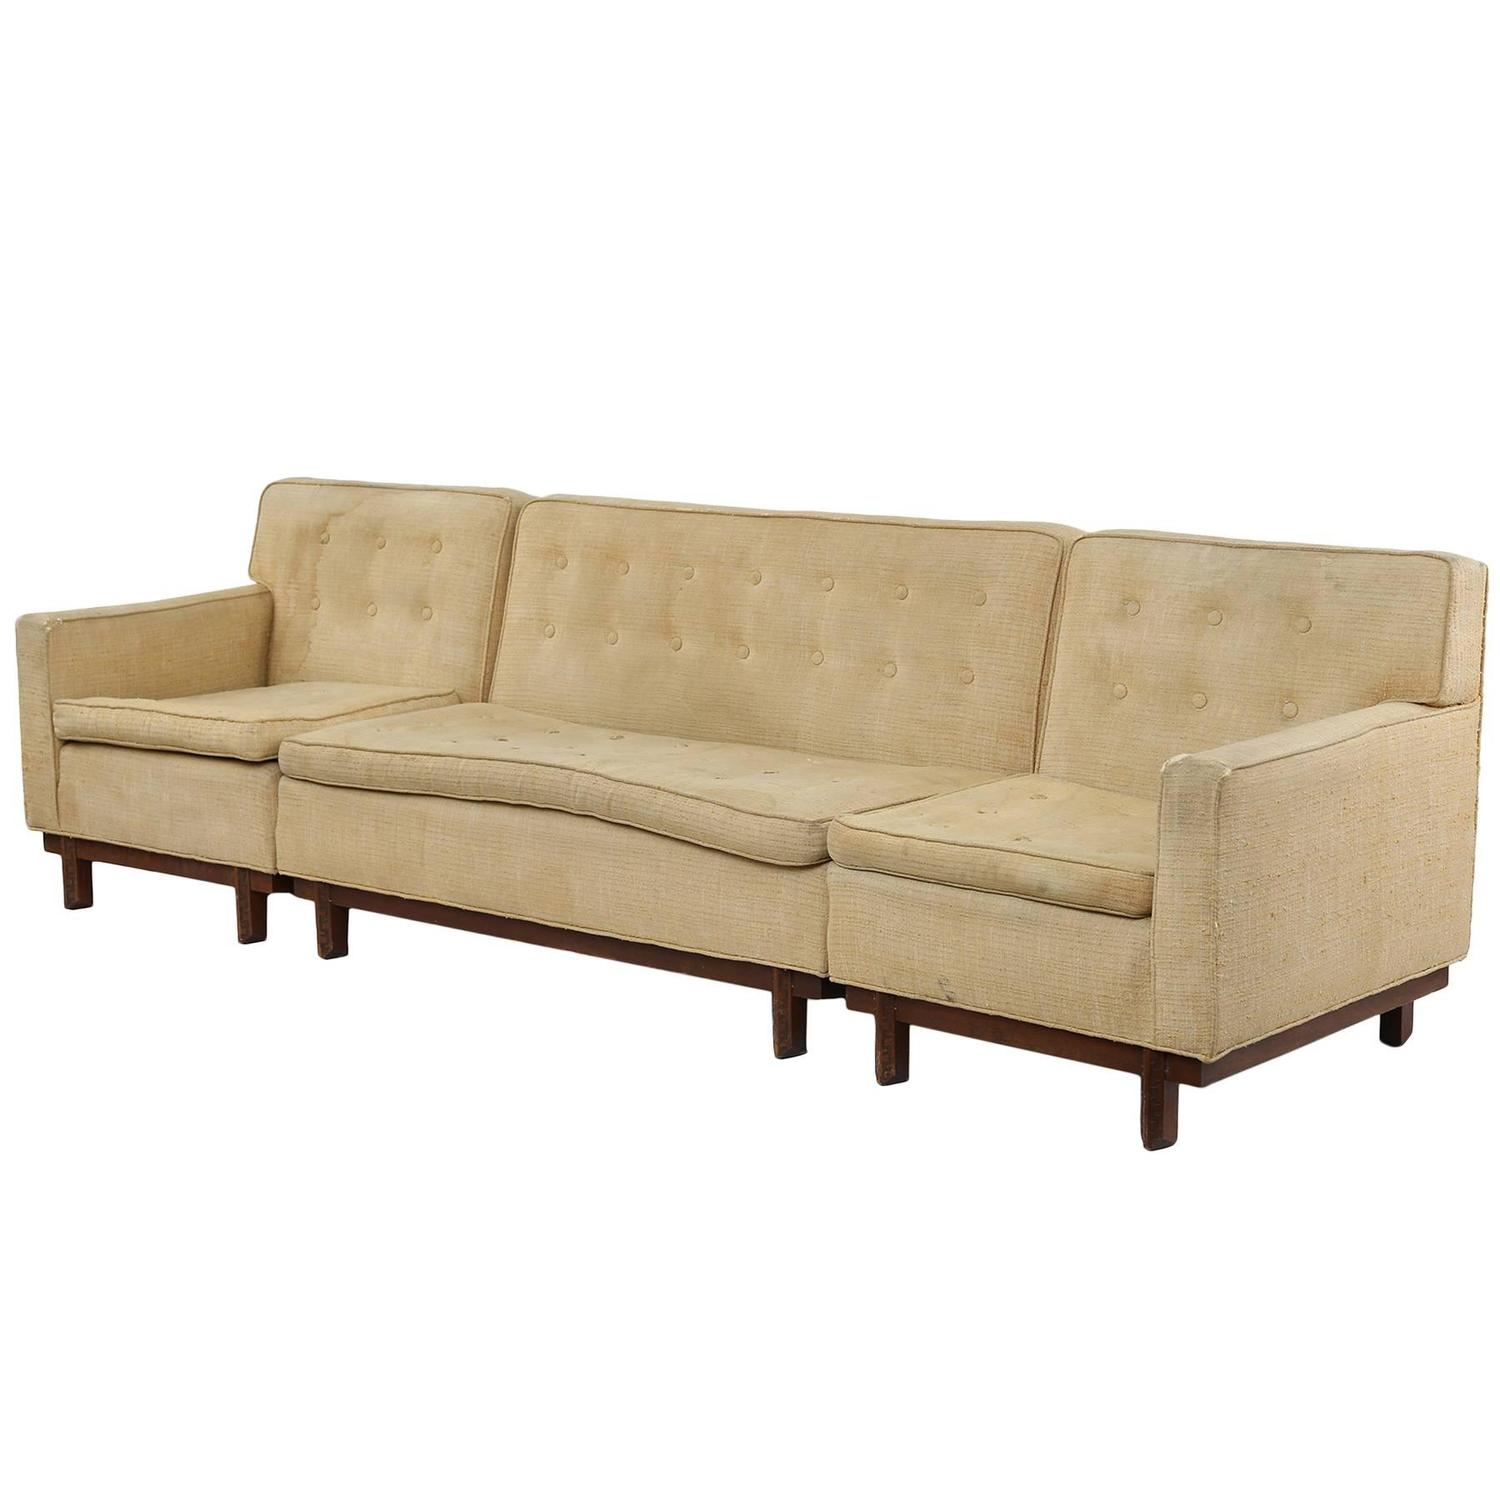 Rare Frank Lloyd Wright Taliesin Sofa at 1stdibs